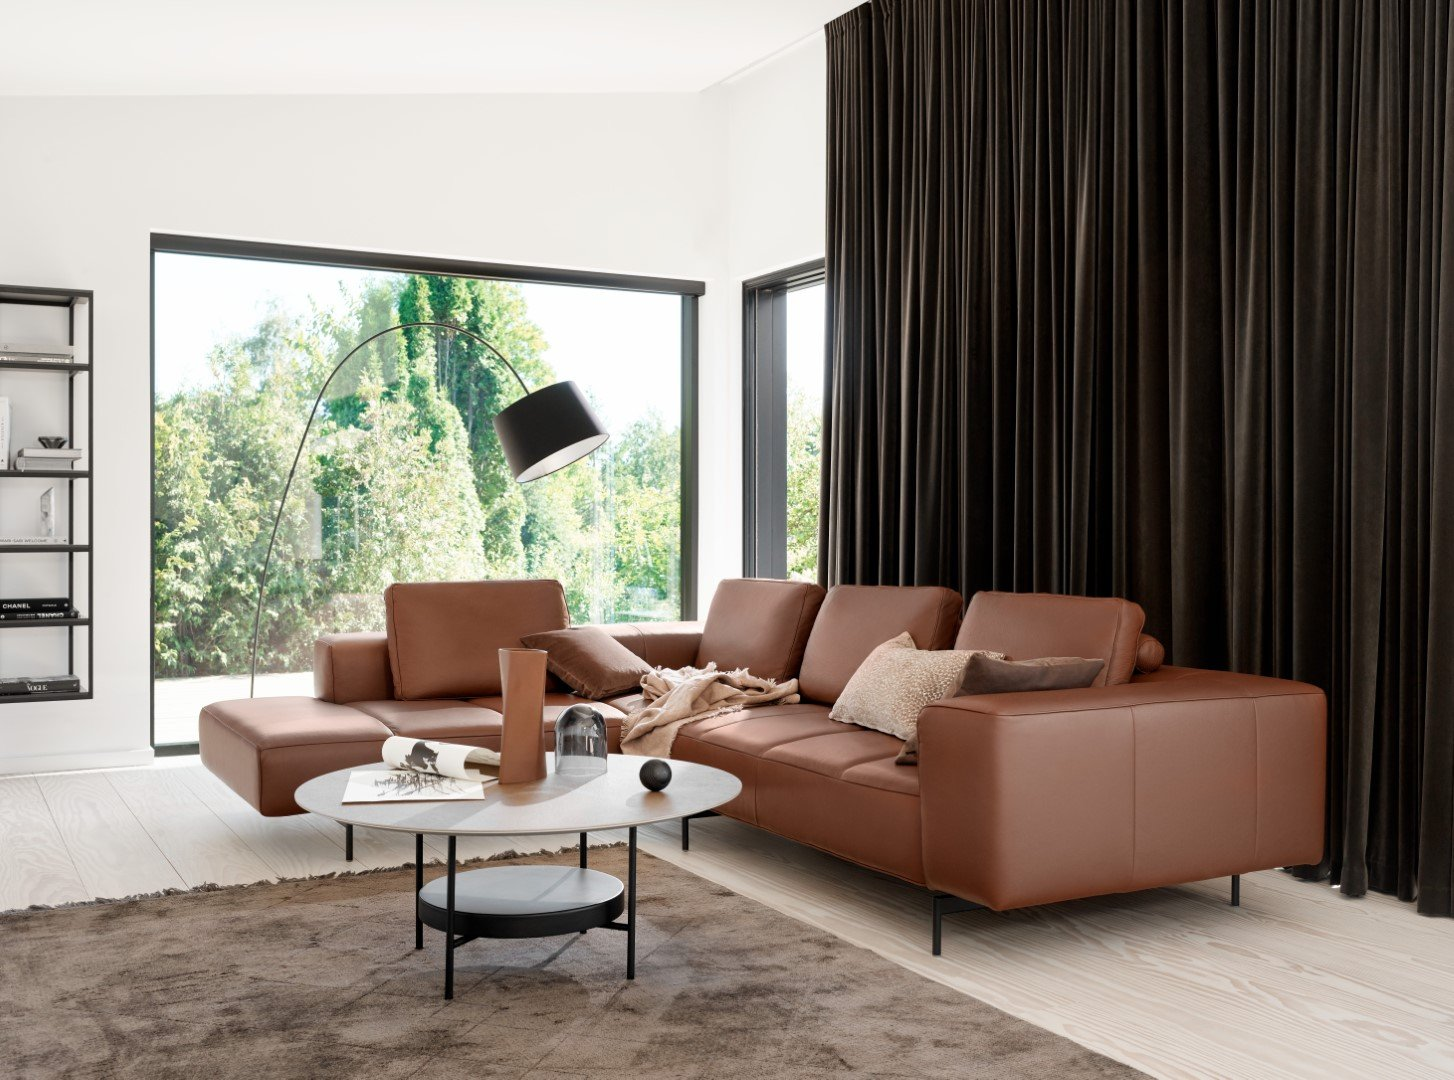 The Amsterdam sofa and Madrid coffee table